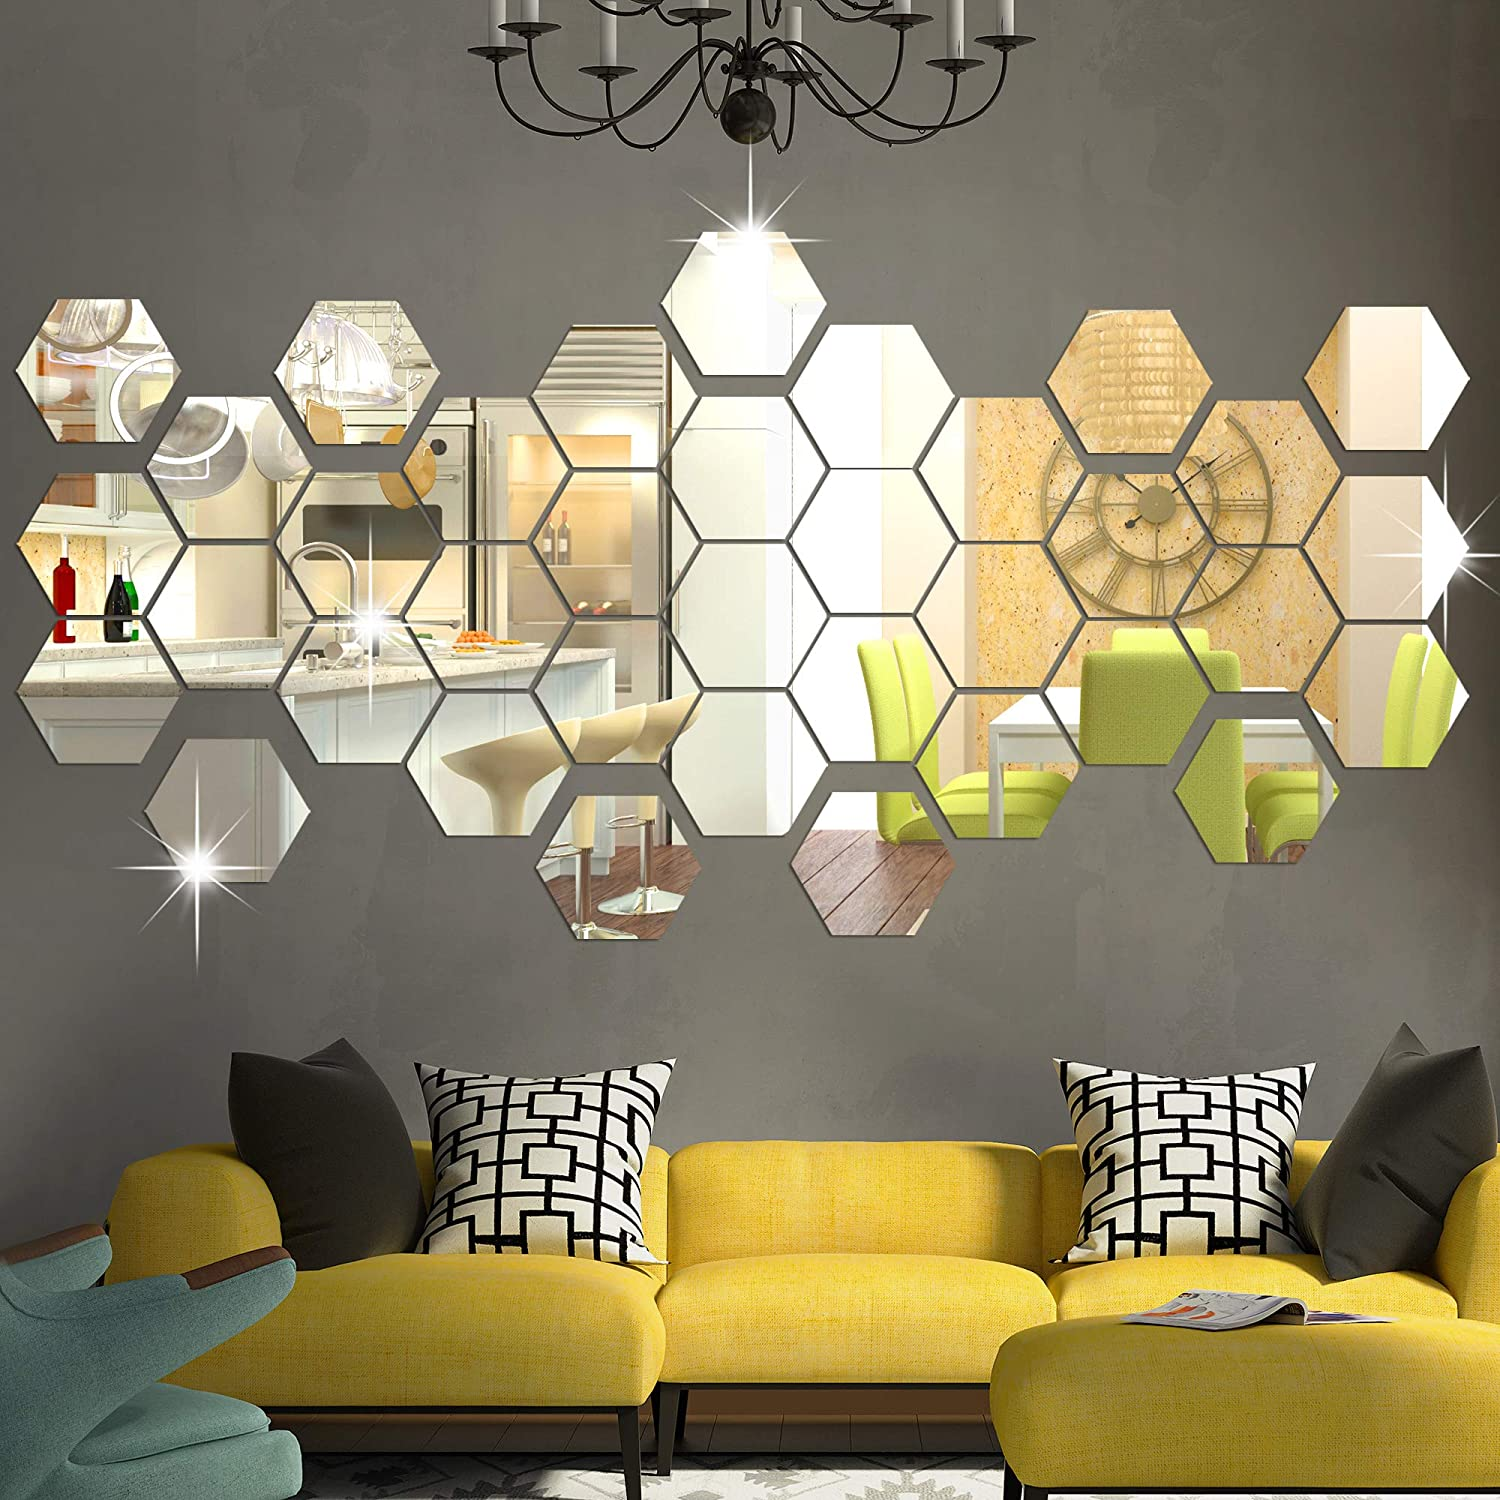 RW-103 36 PCS Acrylic Mirror Wall Stickers Hexagon Mirror Wall Decals DIY Removable 3D Geometric Hexagon Mirror Art Setting Wall Decor for Bedroom Living Room Office Kitchen Home Decoration (Silver)